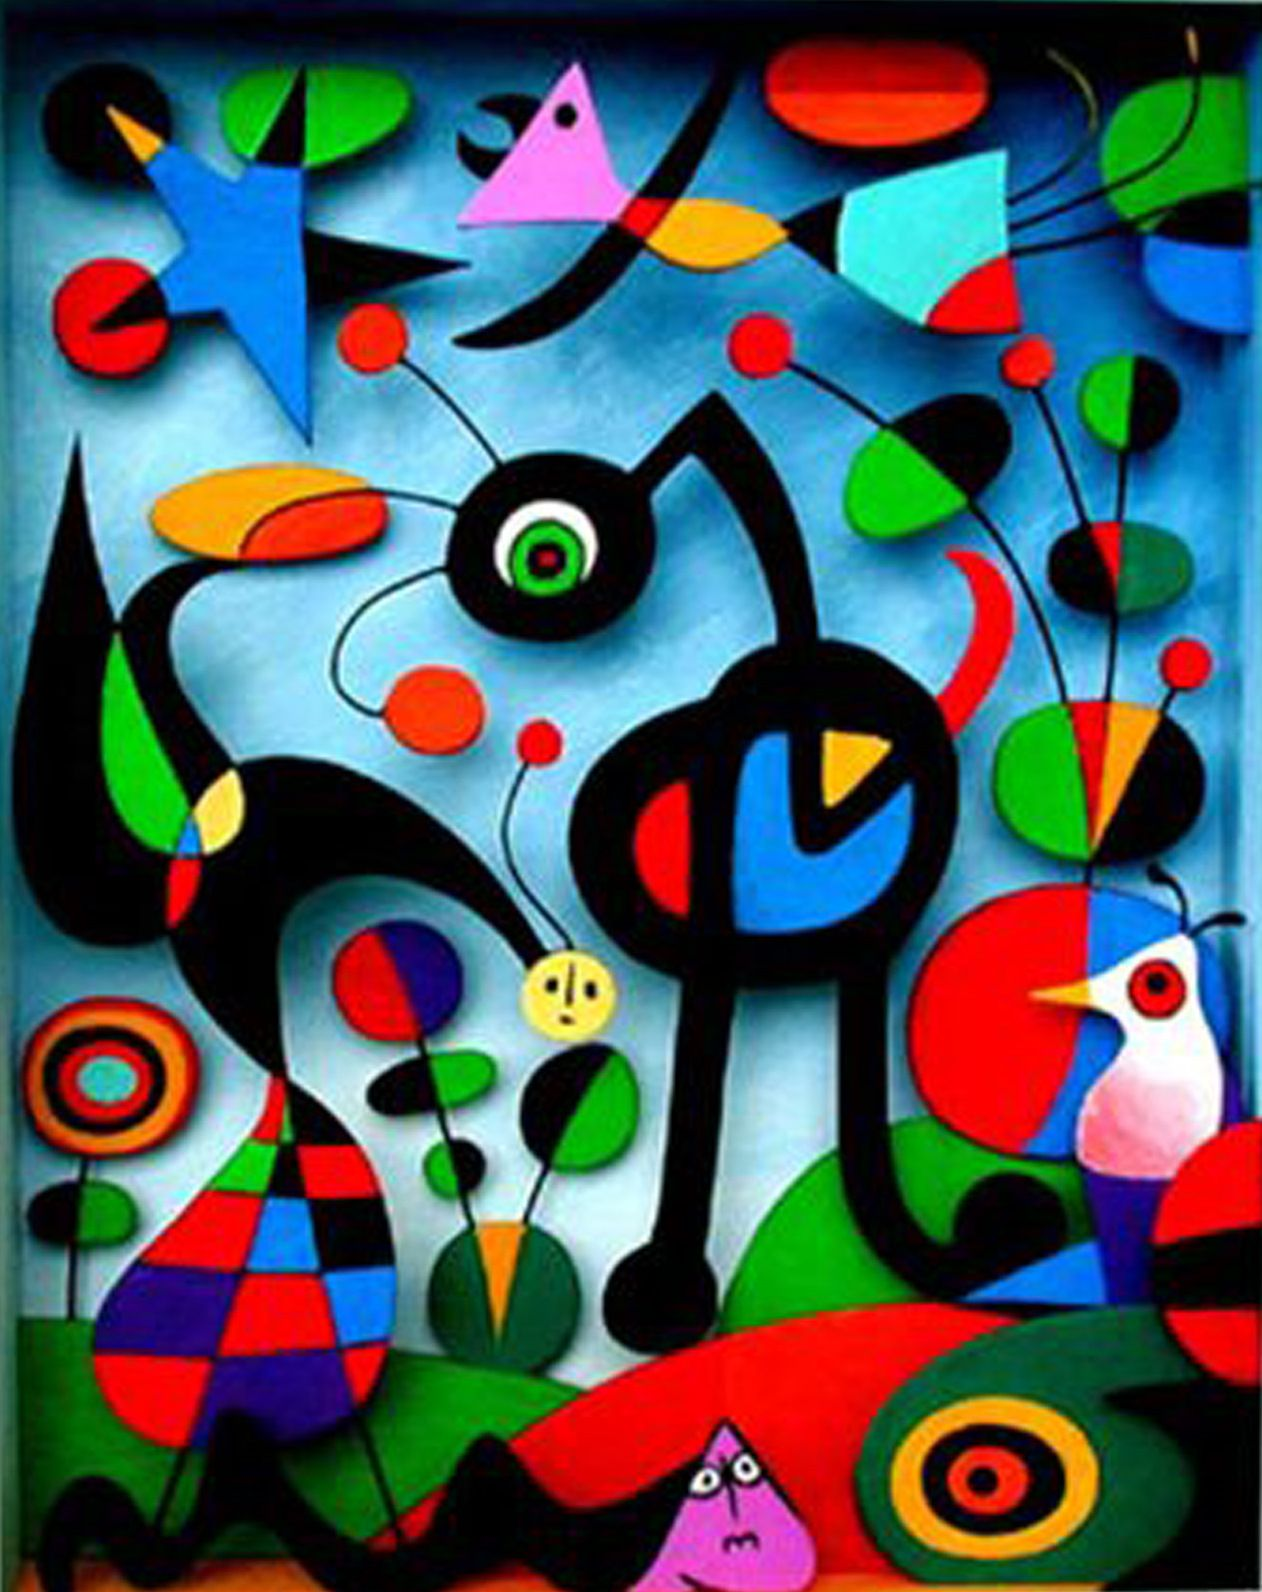 Joan Miro 11 El Surrealismo Education Ideas Miro Paintings Art